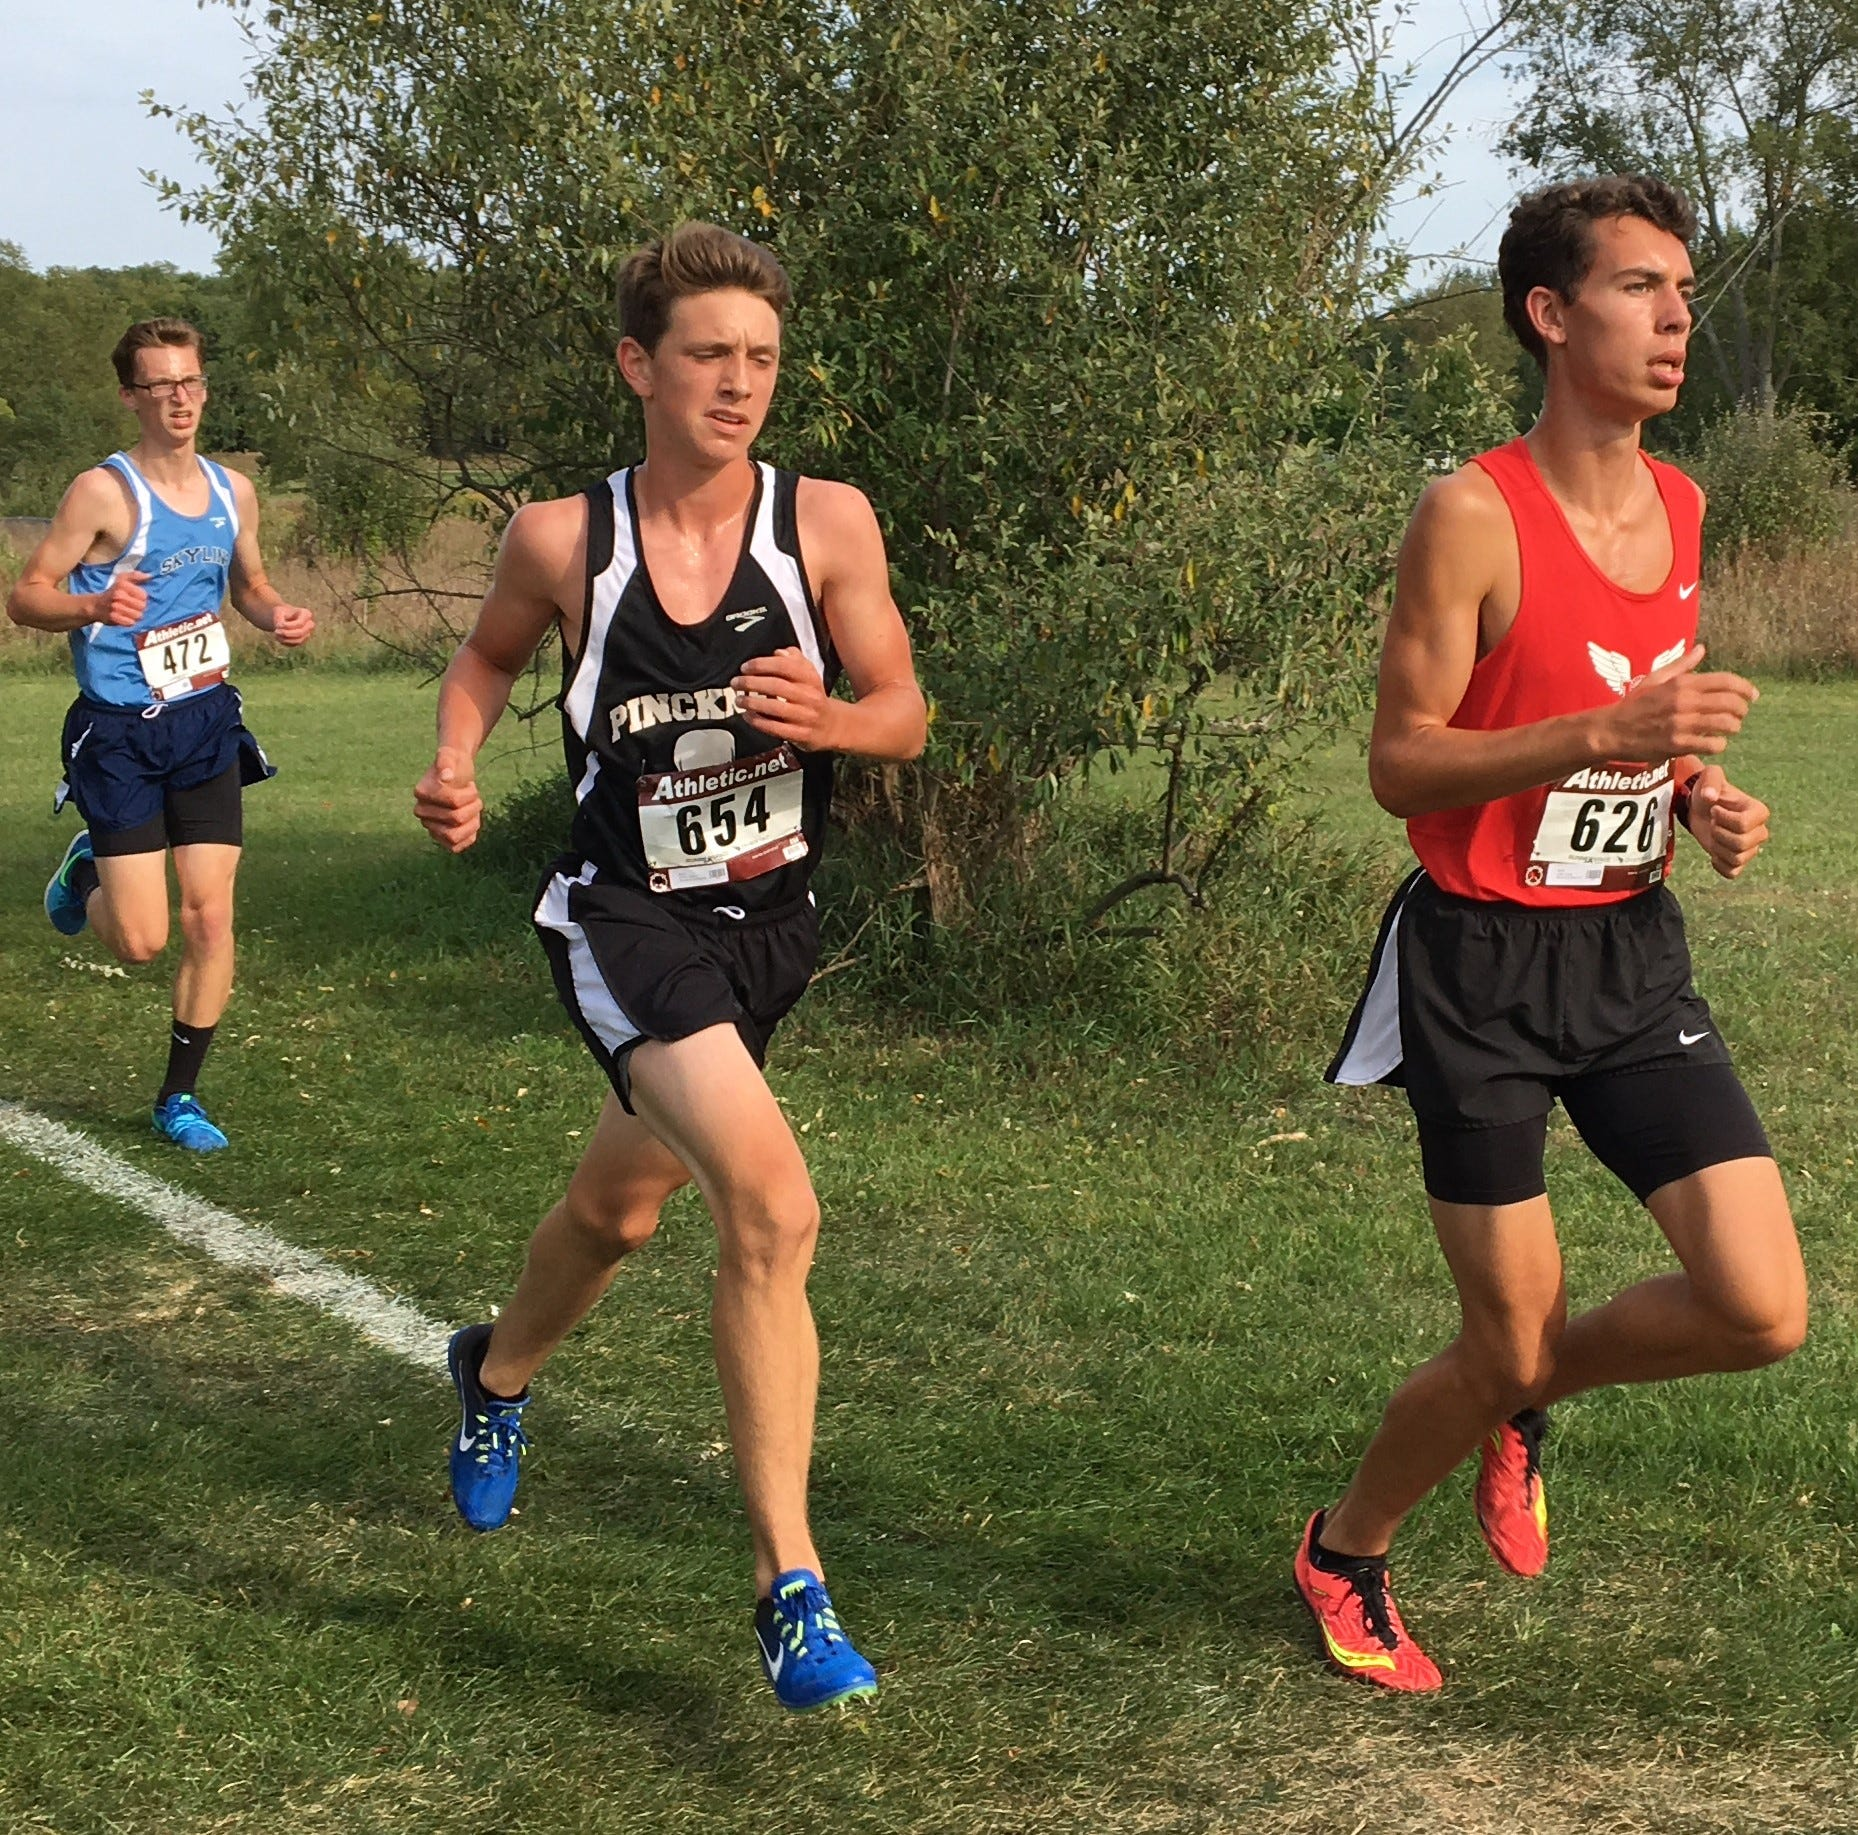 Pinckney running star Gavin White gives up soccer to focus on cross country